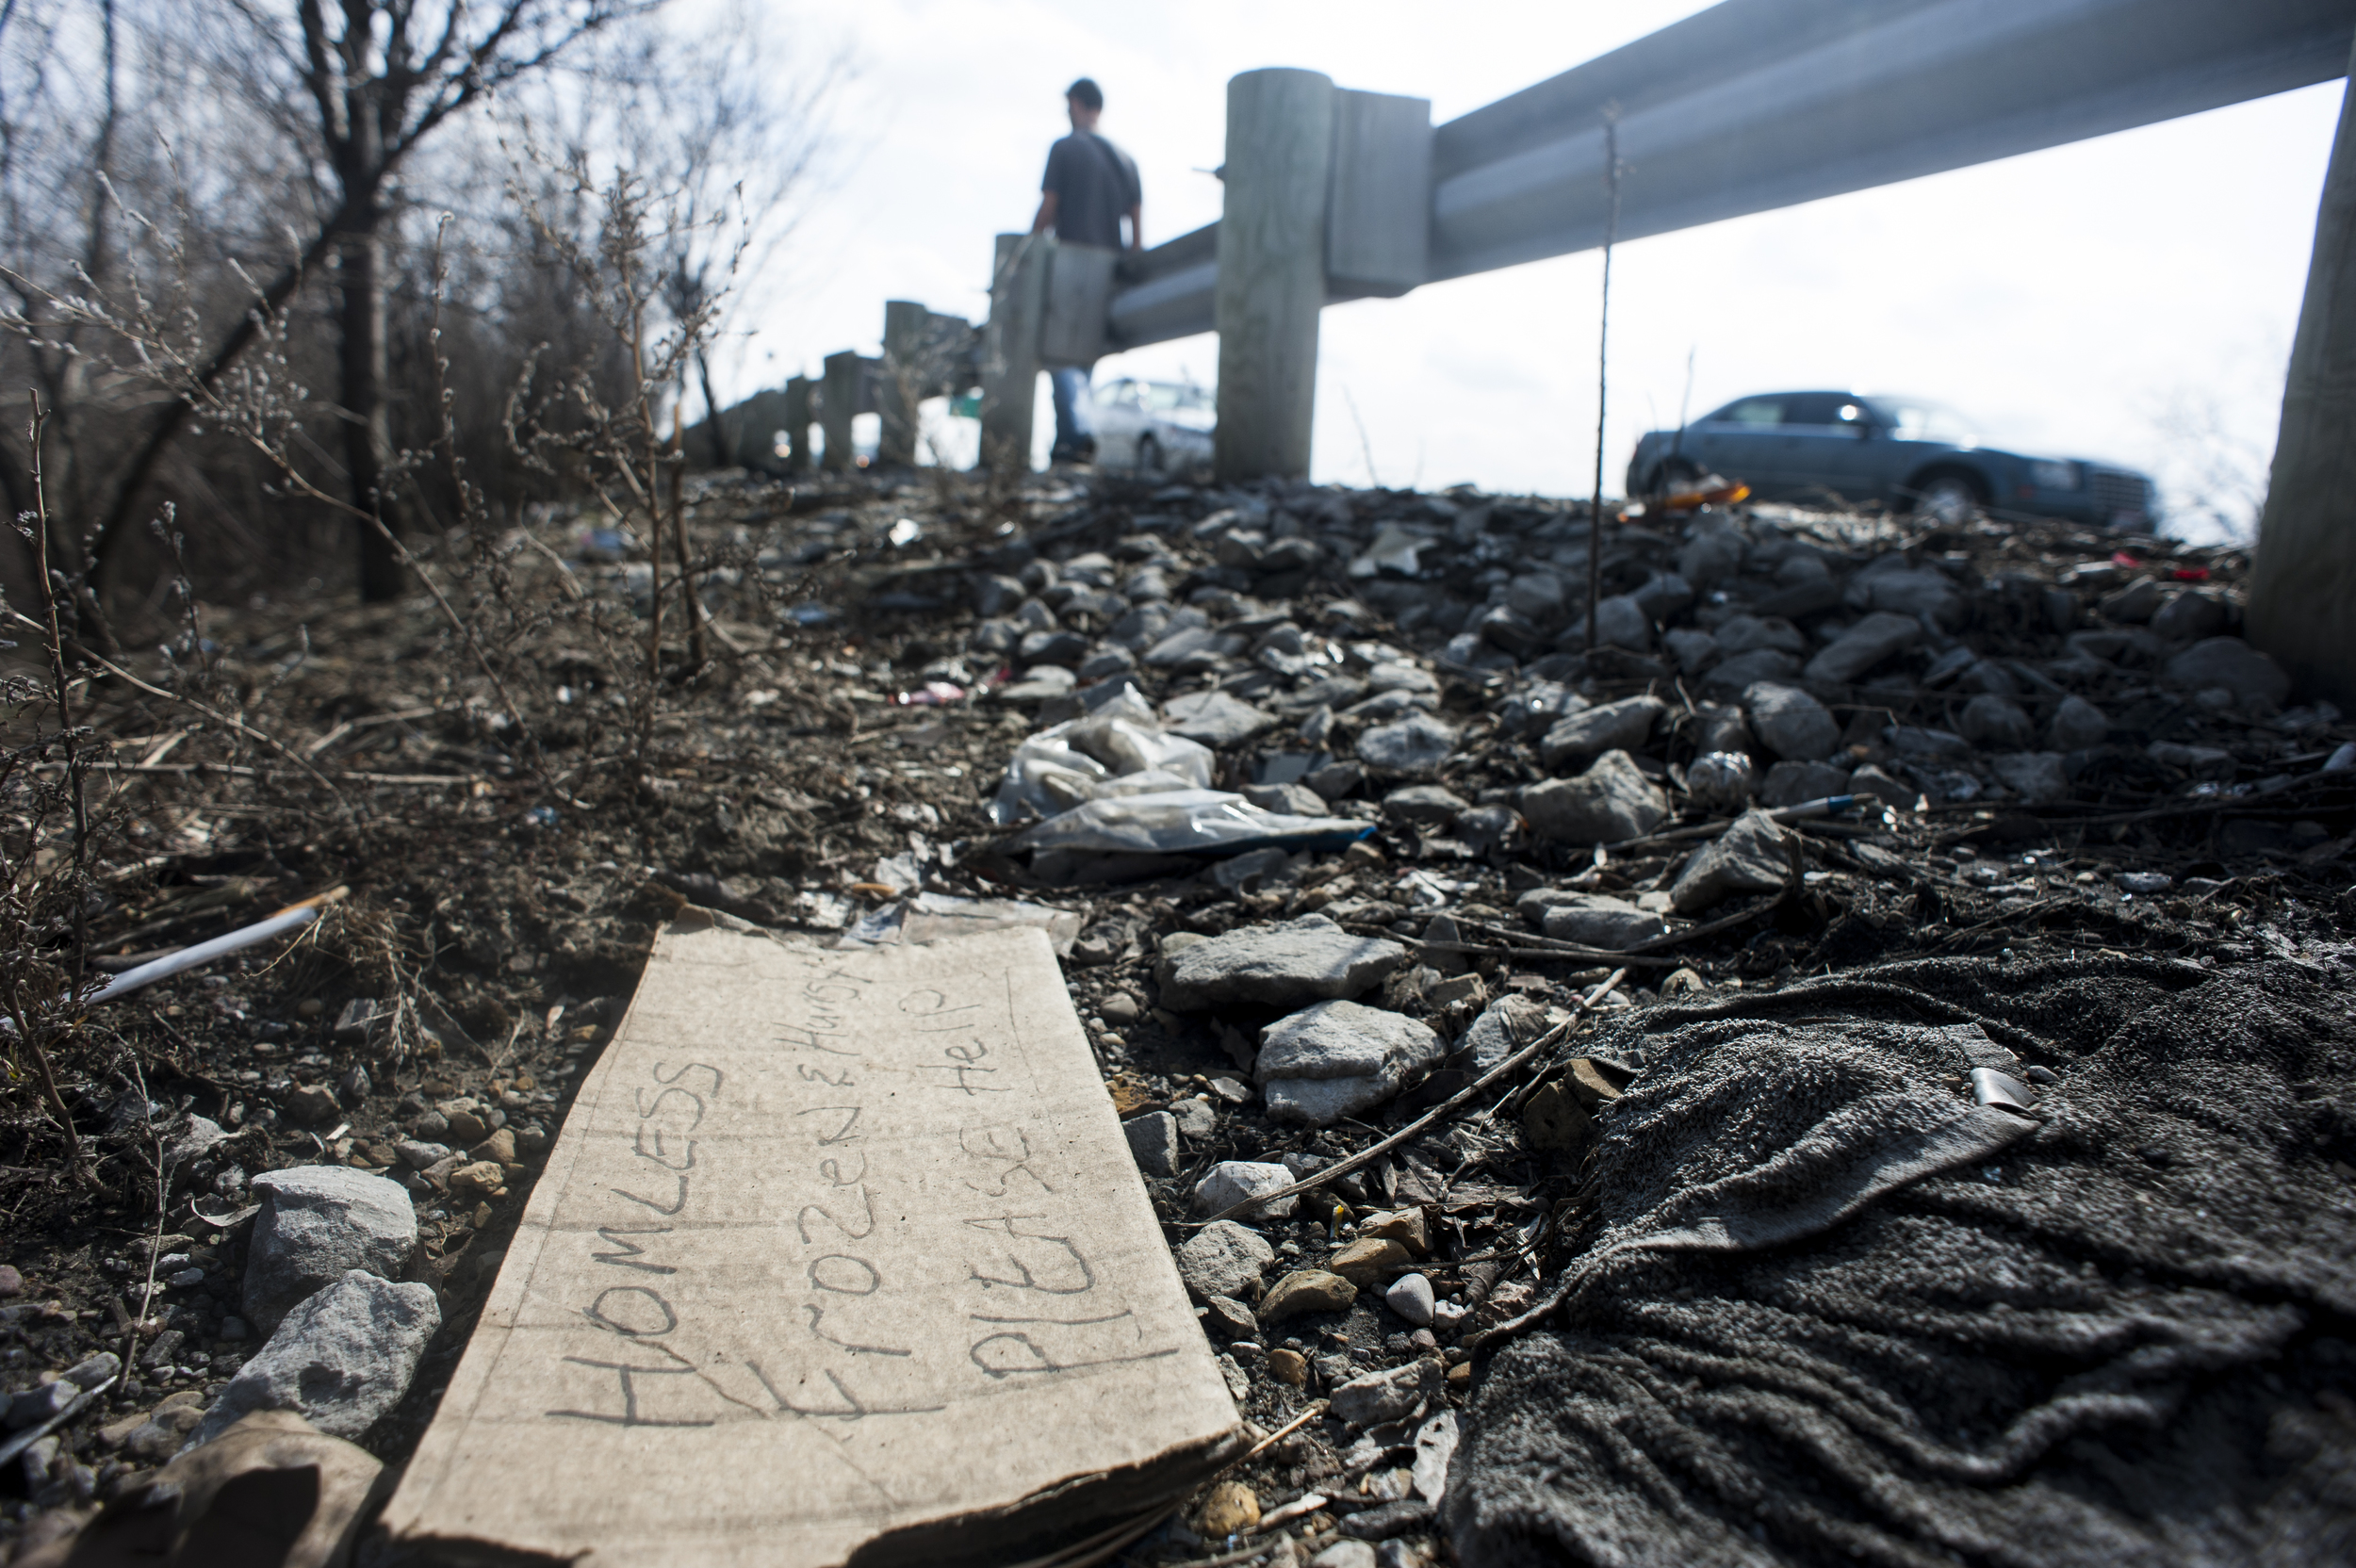 Due to the high volume of traffic, interstate exits serve as frequent panhandling spots for the homeless in Columbus.